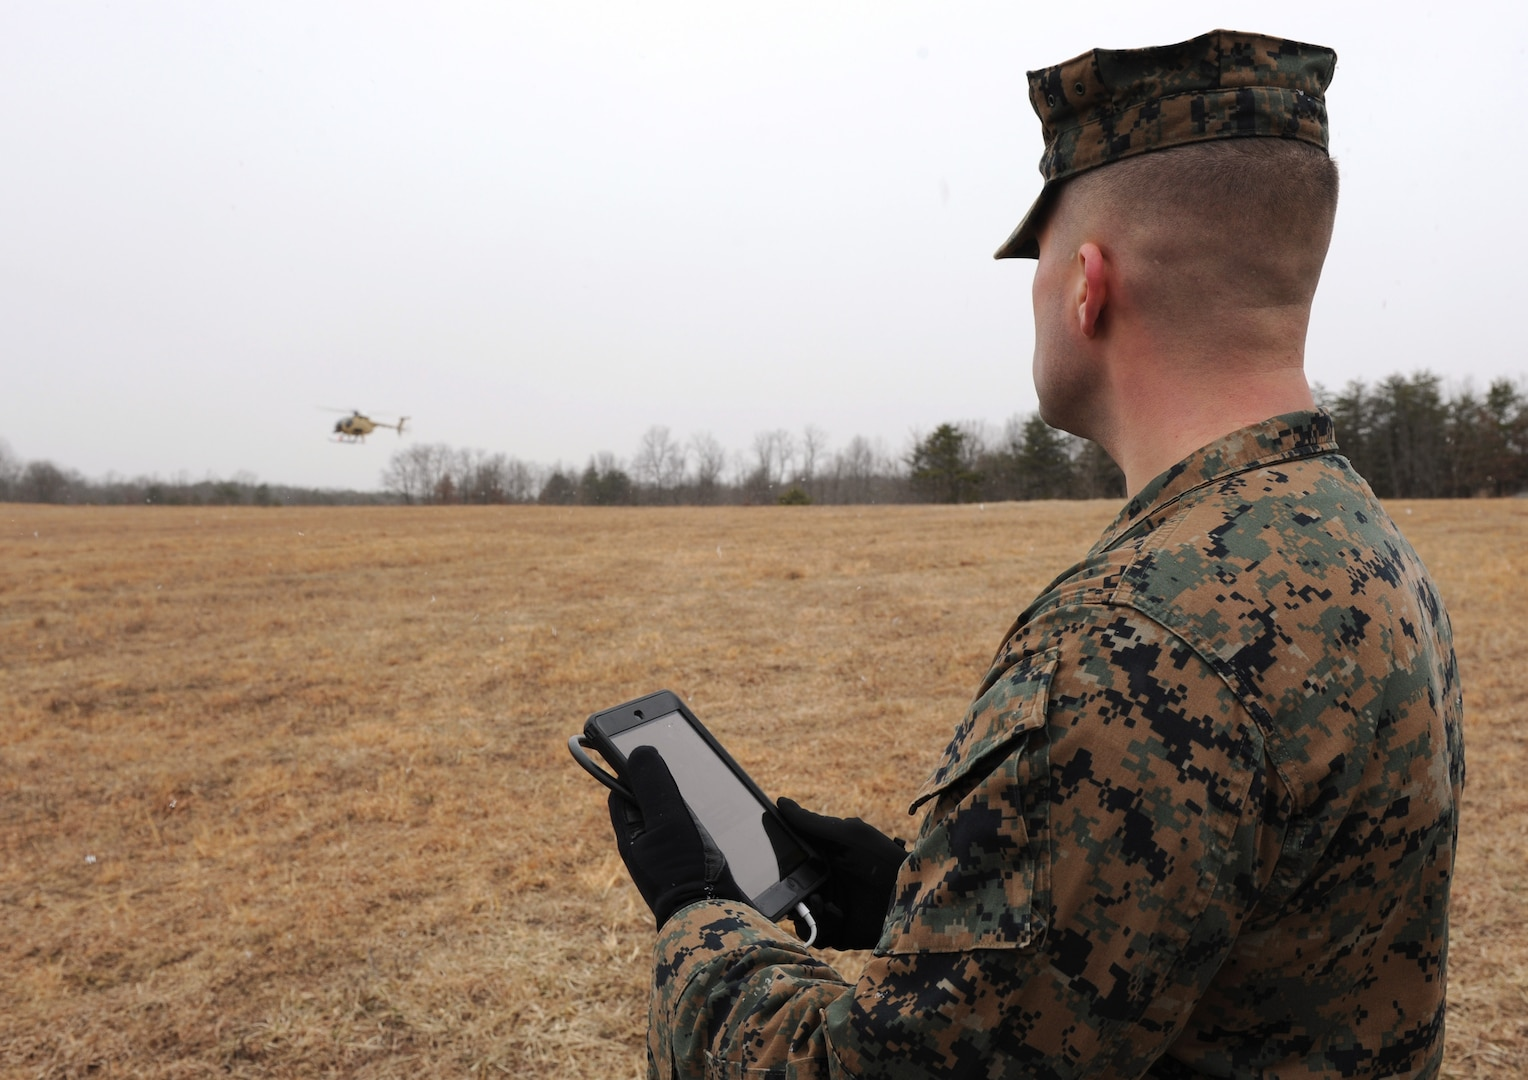 Seaman uses handheld tablet to request resupply during Office of Naval Research demonstration of Autonomous Aerial Cargo/Utility System, giving capability to helicopters for unmanned flight, Quantico, Virginia, February 25, 2014 (U.S. Navy/John F. Williams)